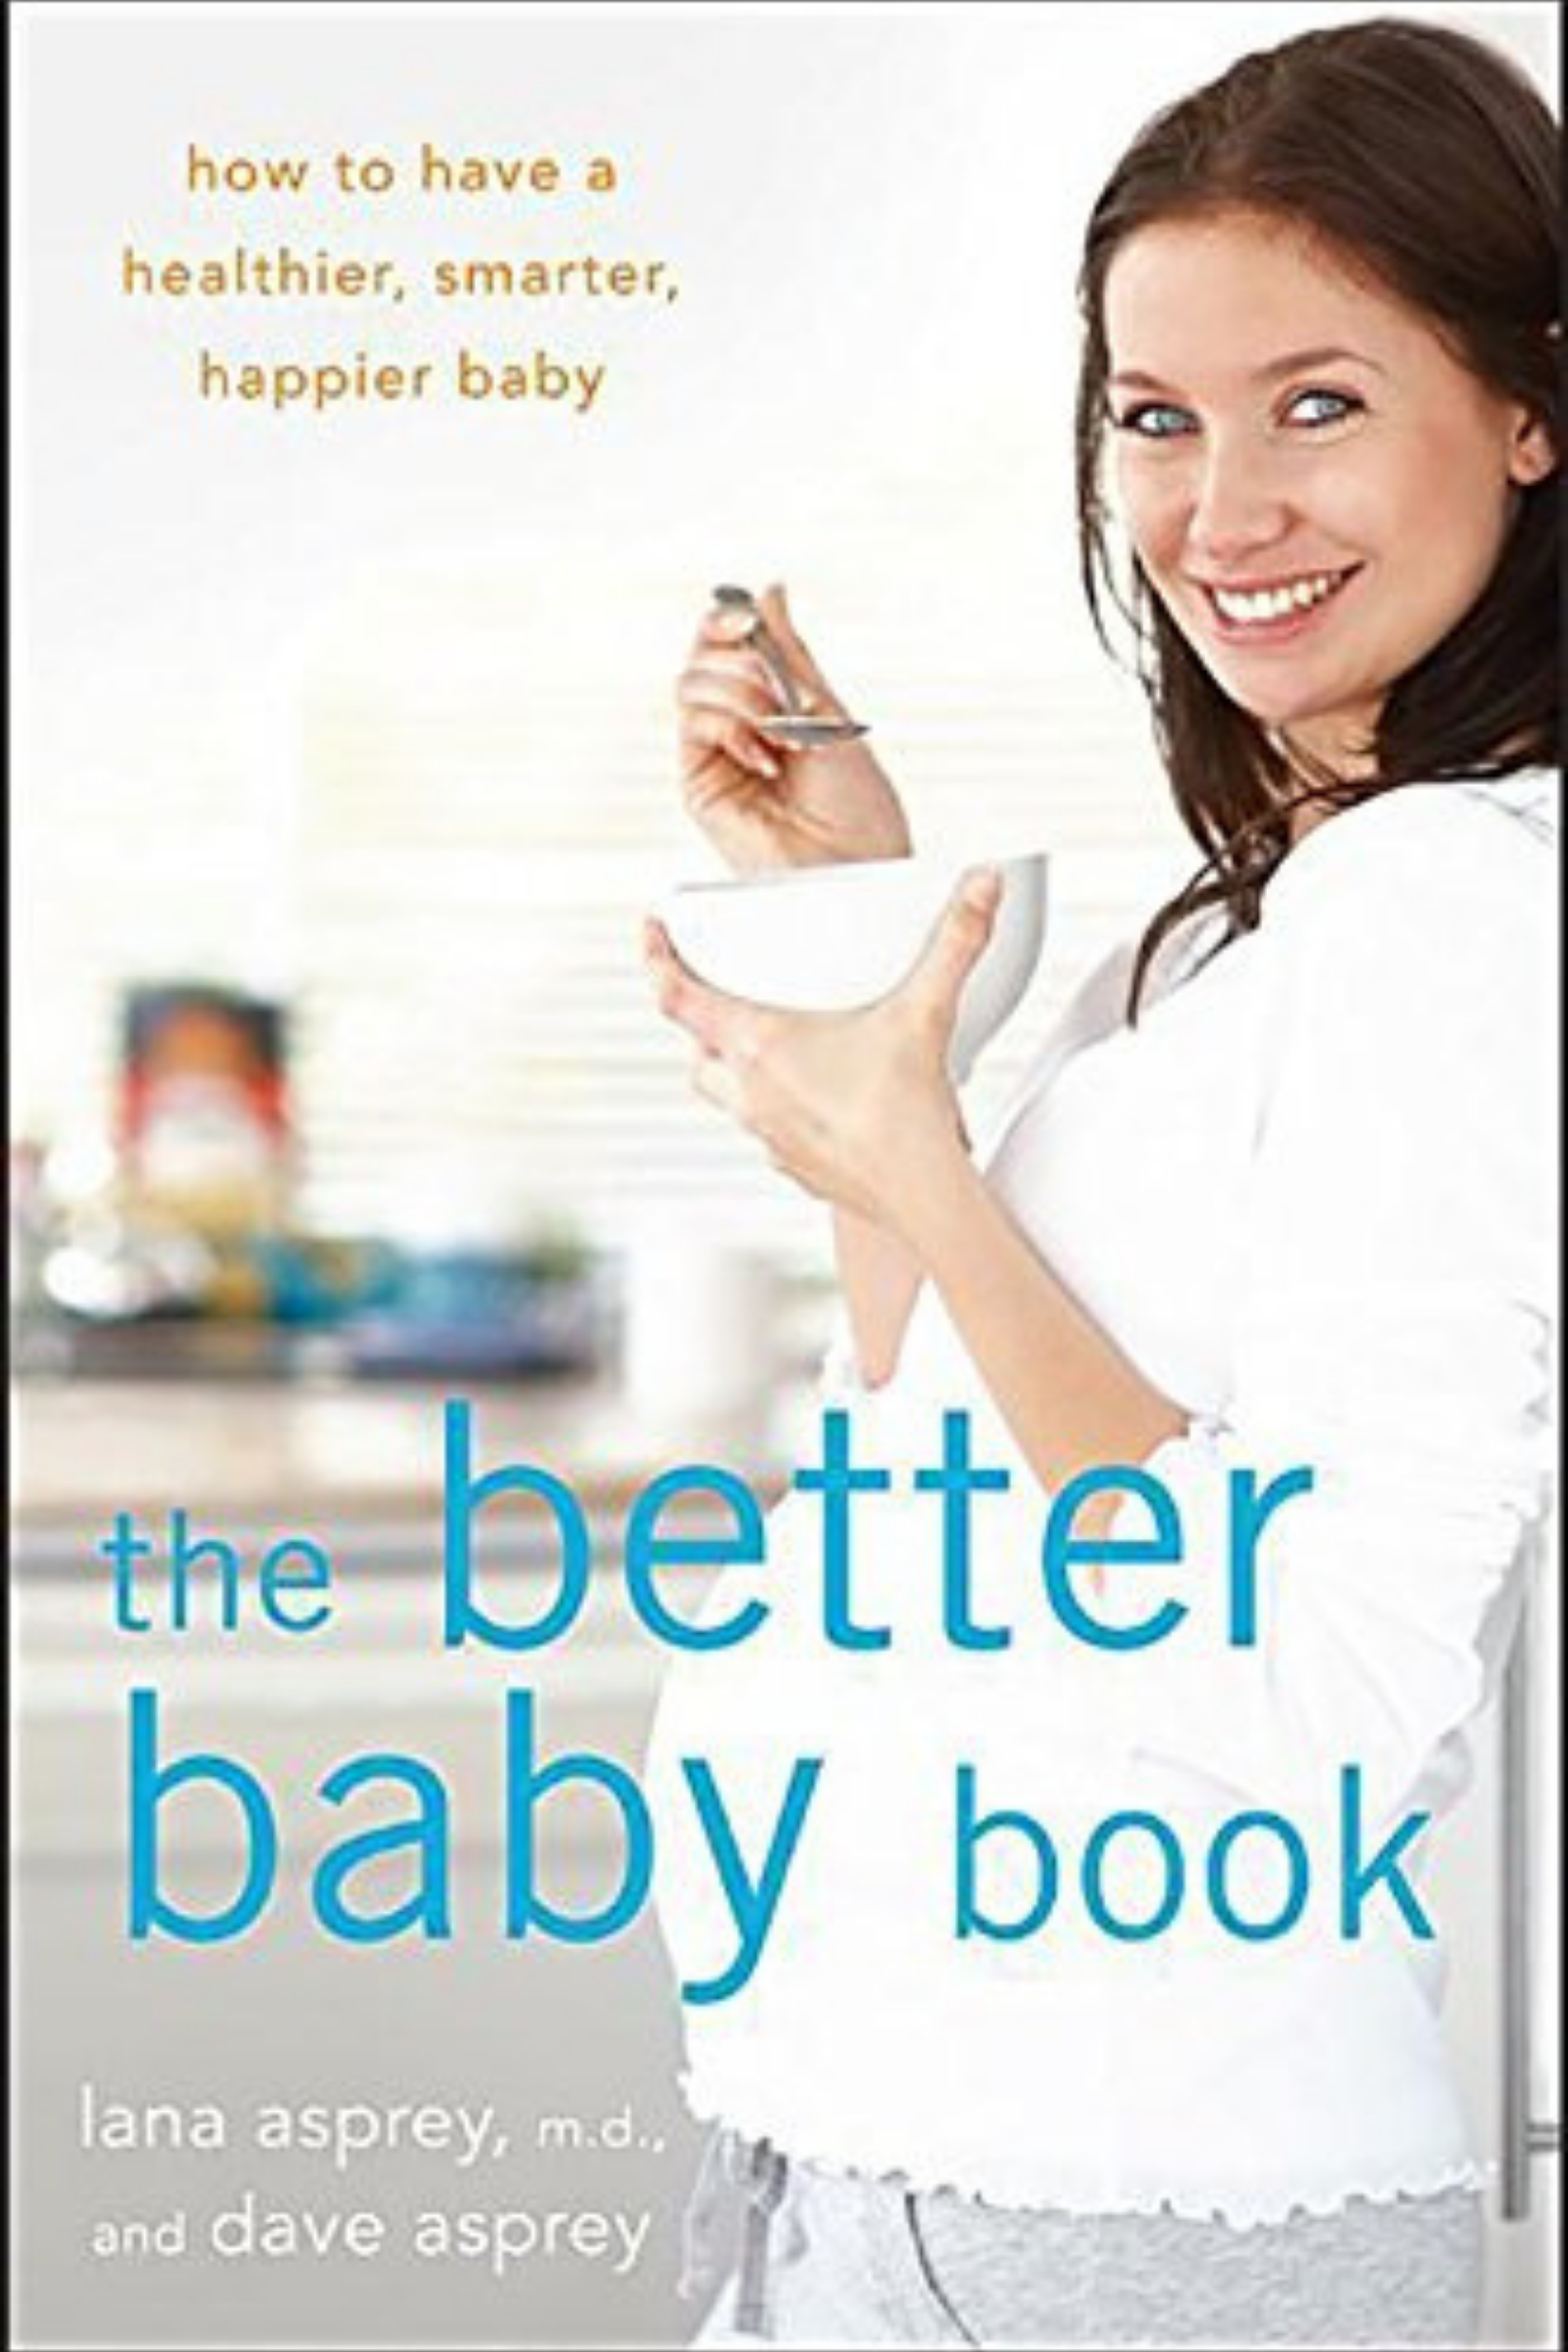 The Better Baby Book Lana Asprey David Asprey Courtney Elmer.png